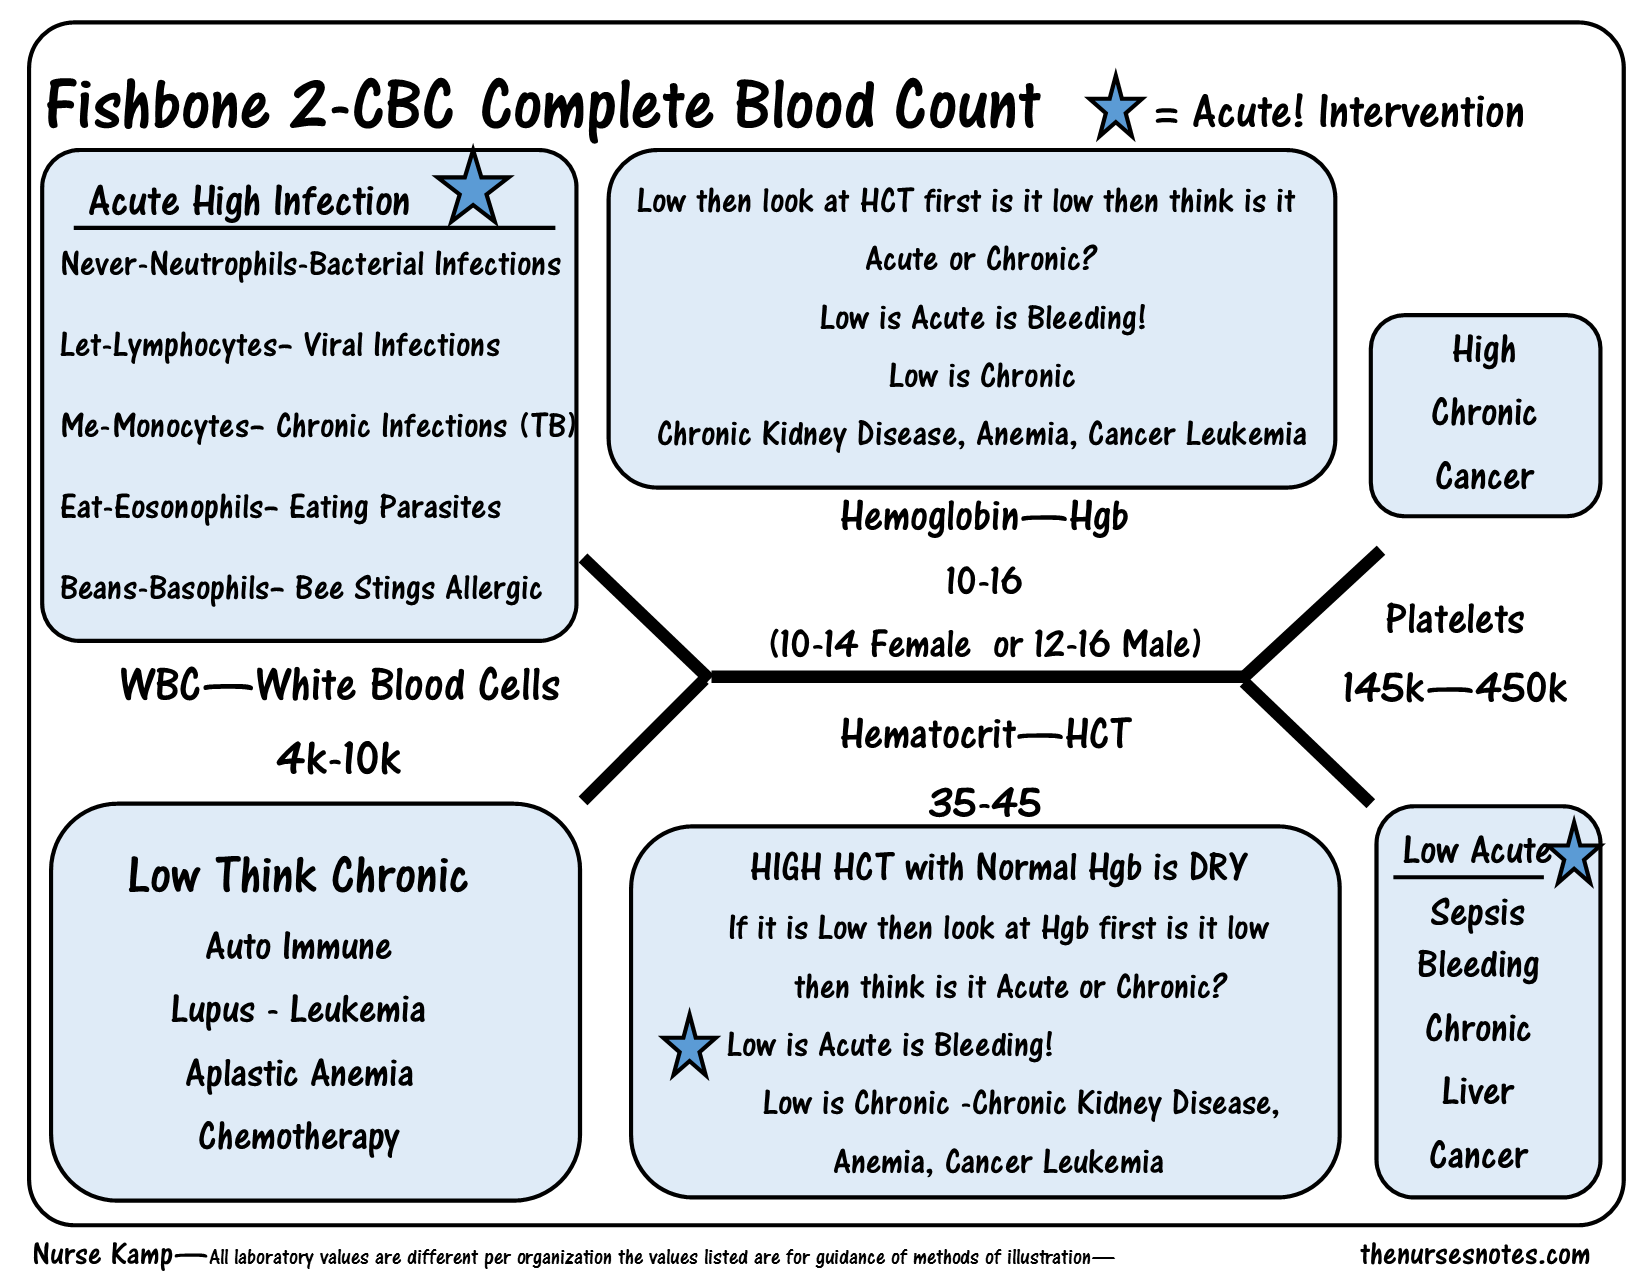 This Is The 2nd Fishbone Overview Of The Cbc Complete Blood Count Diagram Explaining The